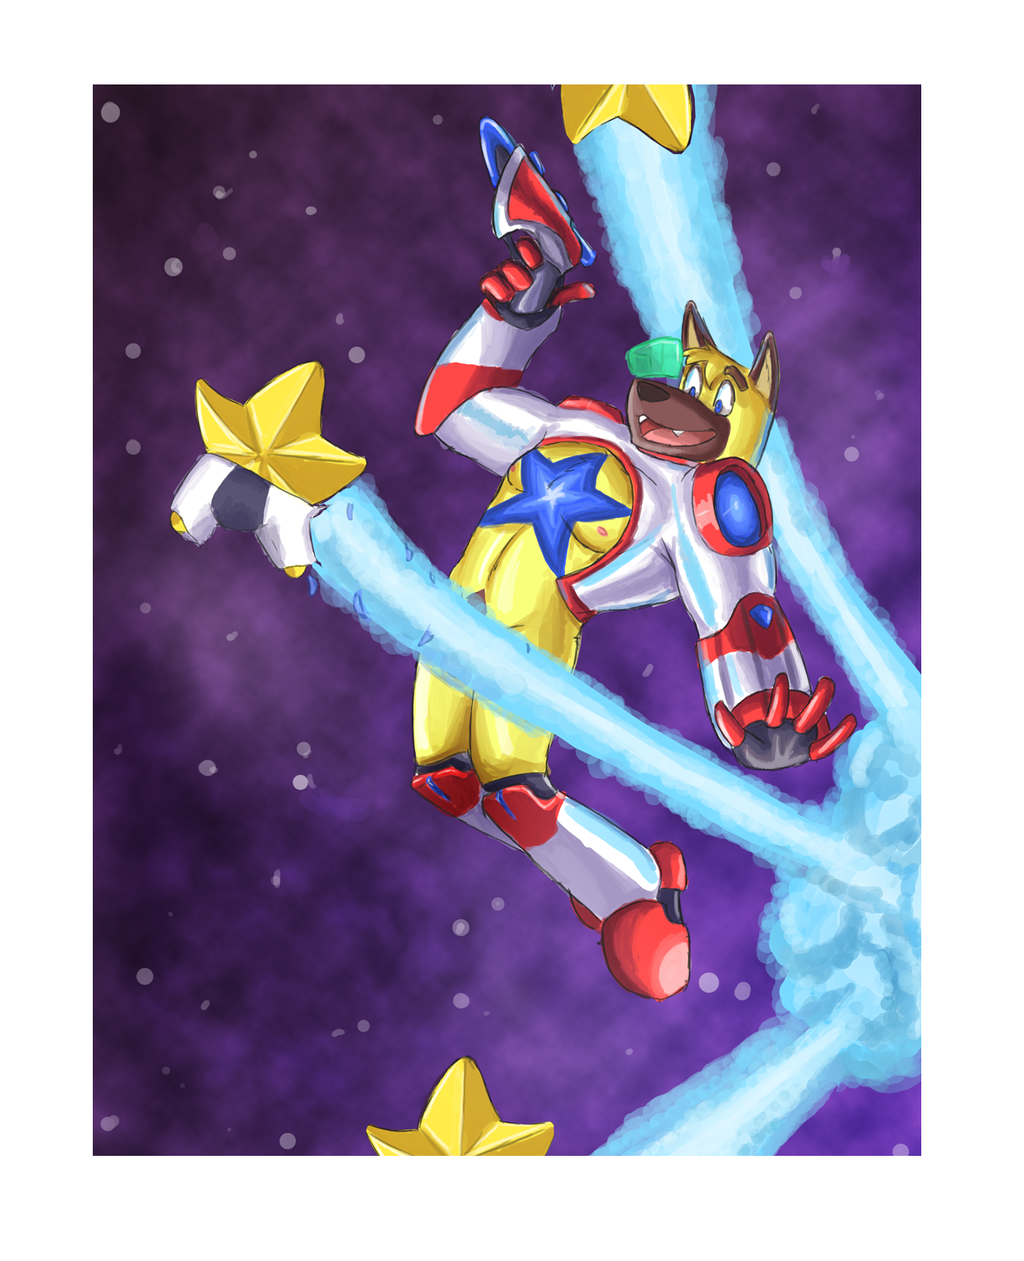 Most recent image: Jak Star - Shooting Star